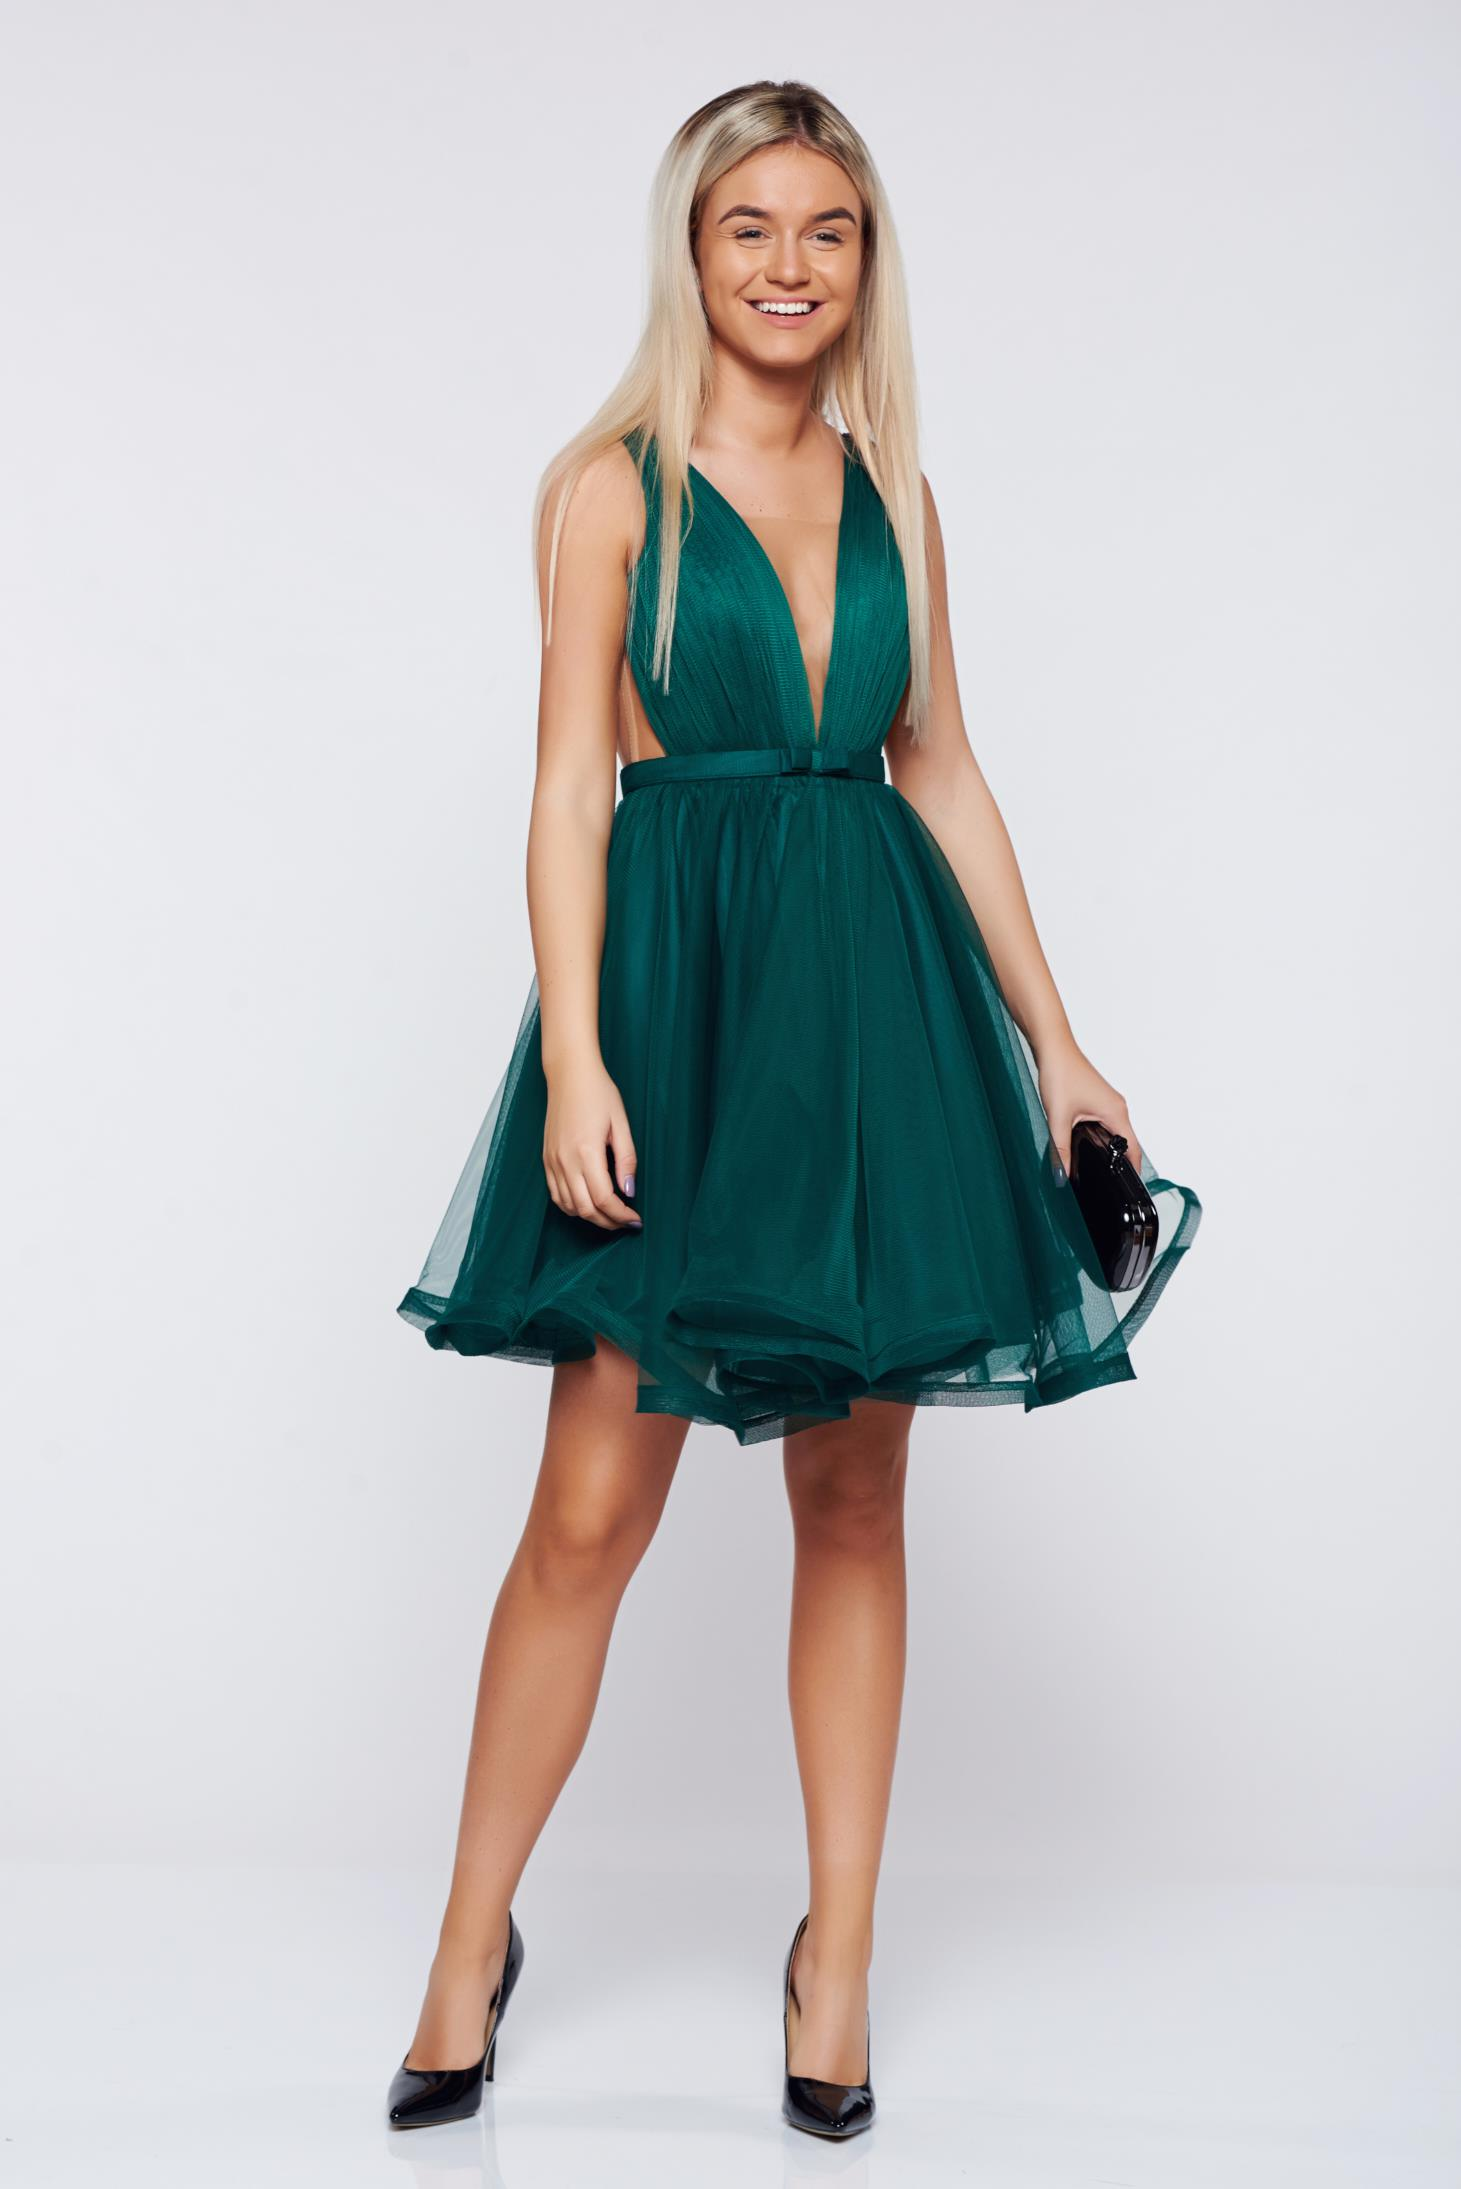 Ana Radu cloche darkgreen luxurious dress with a cleavage from tulle with inside lining accessorized with tied waistband